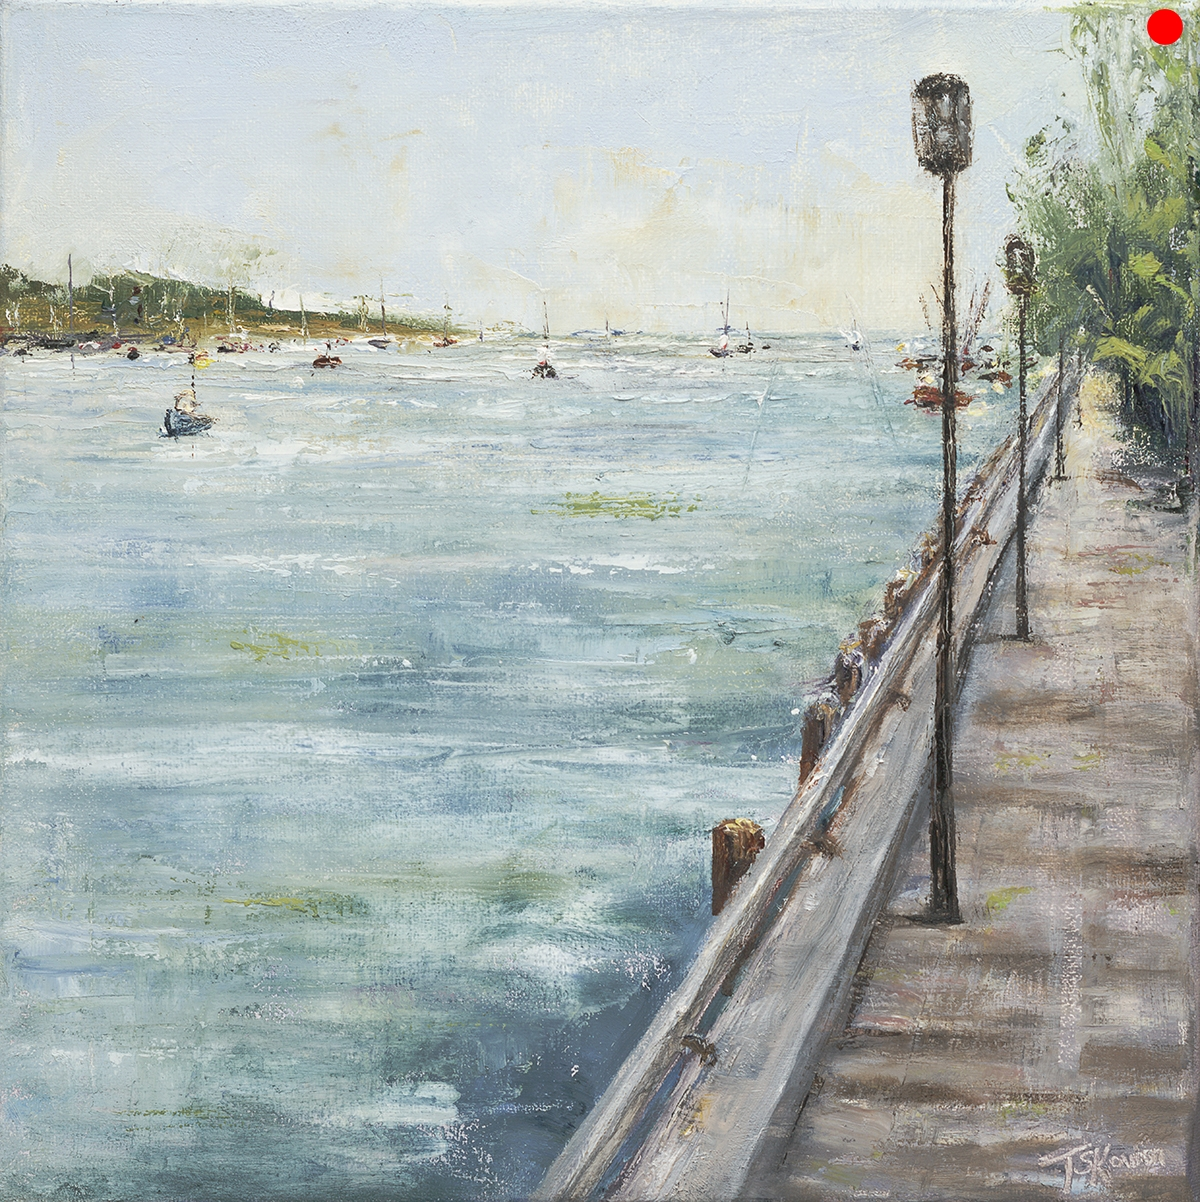 """Anticipation I - Diptych Newburyport, MA, 12 x 12 x 1.5""""D oil on stretched canvas in silver finish floater frame"""